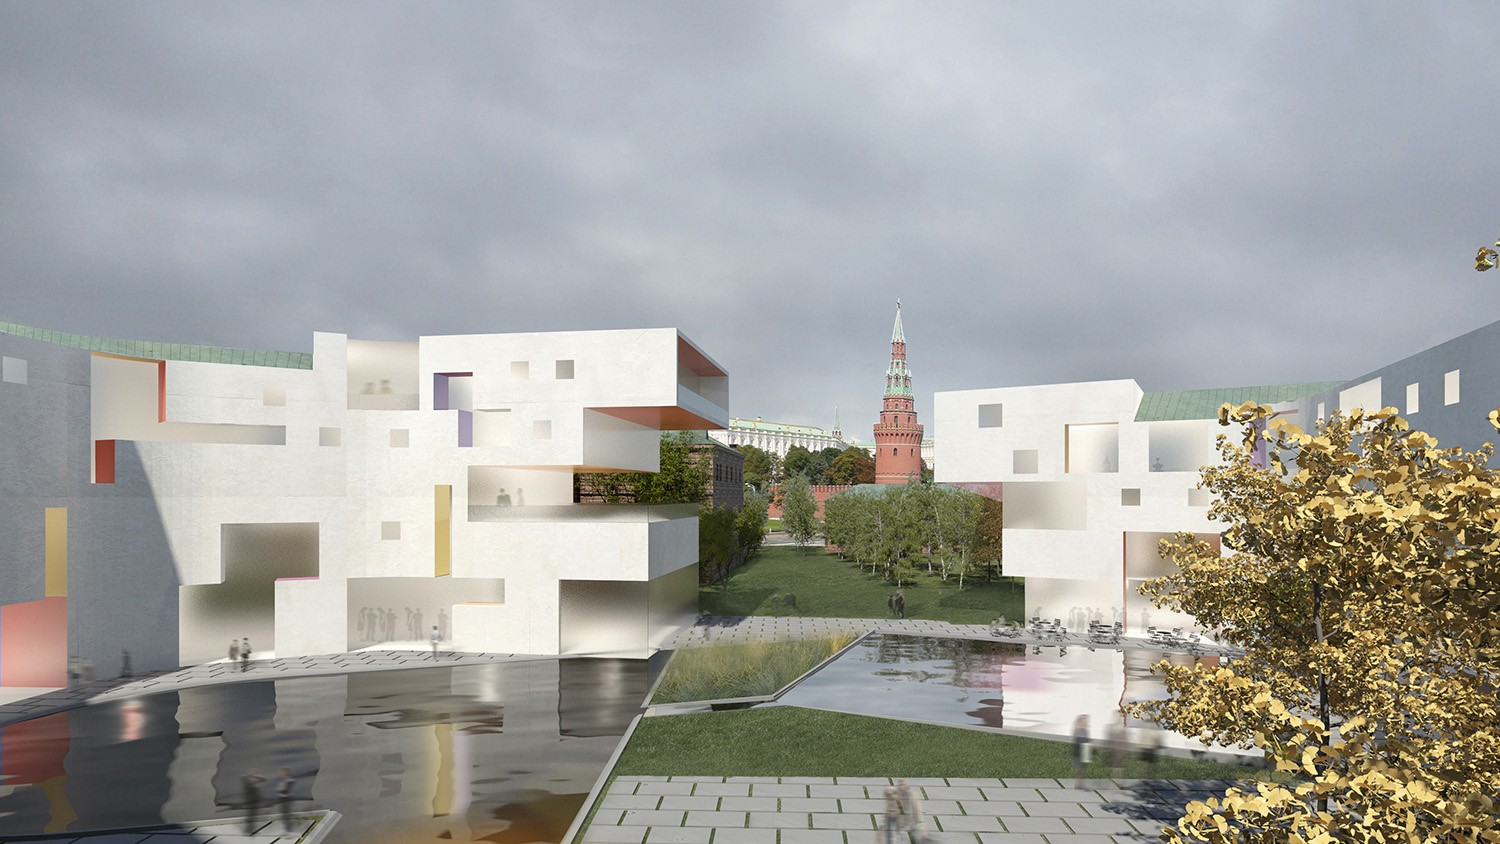 https://s3.us-east-2.amazonaws.com/steven-holl/uploads/projects/project-images/StevenHollArchitects_MGI_SHA-Moscow-main plaza_1_WH.jpg